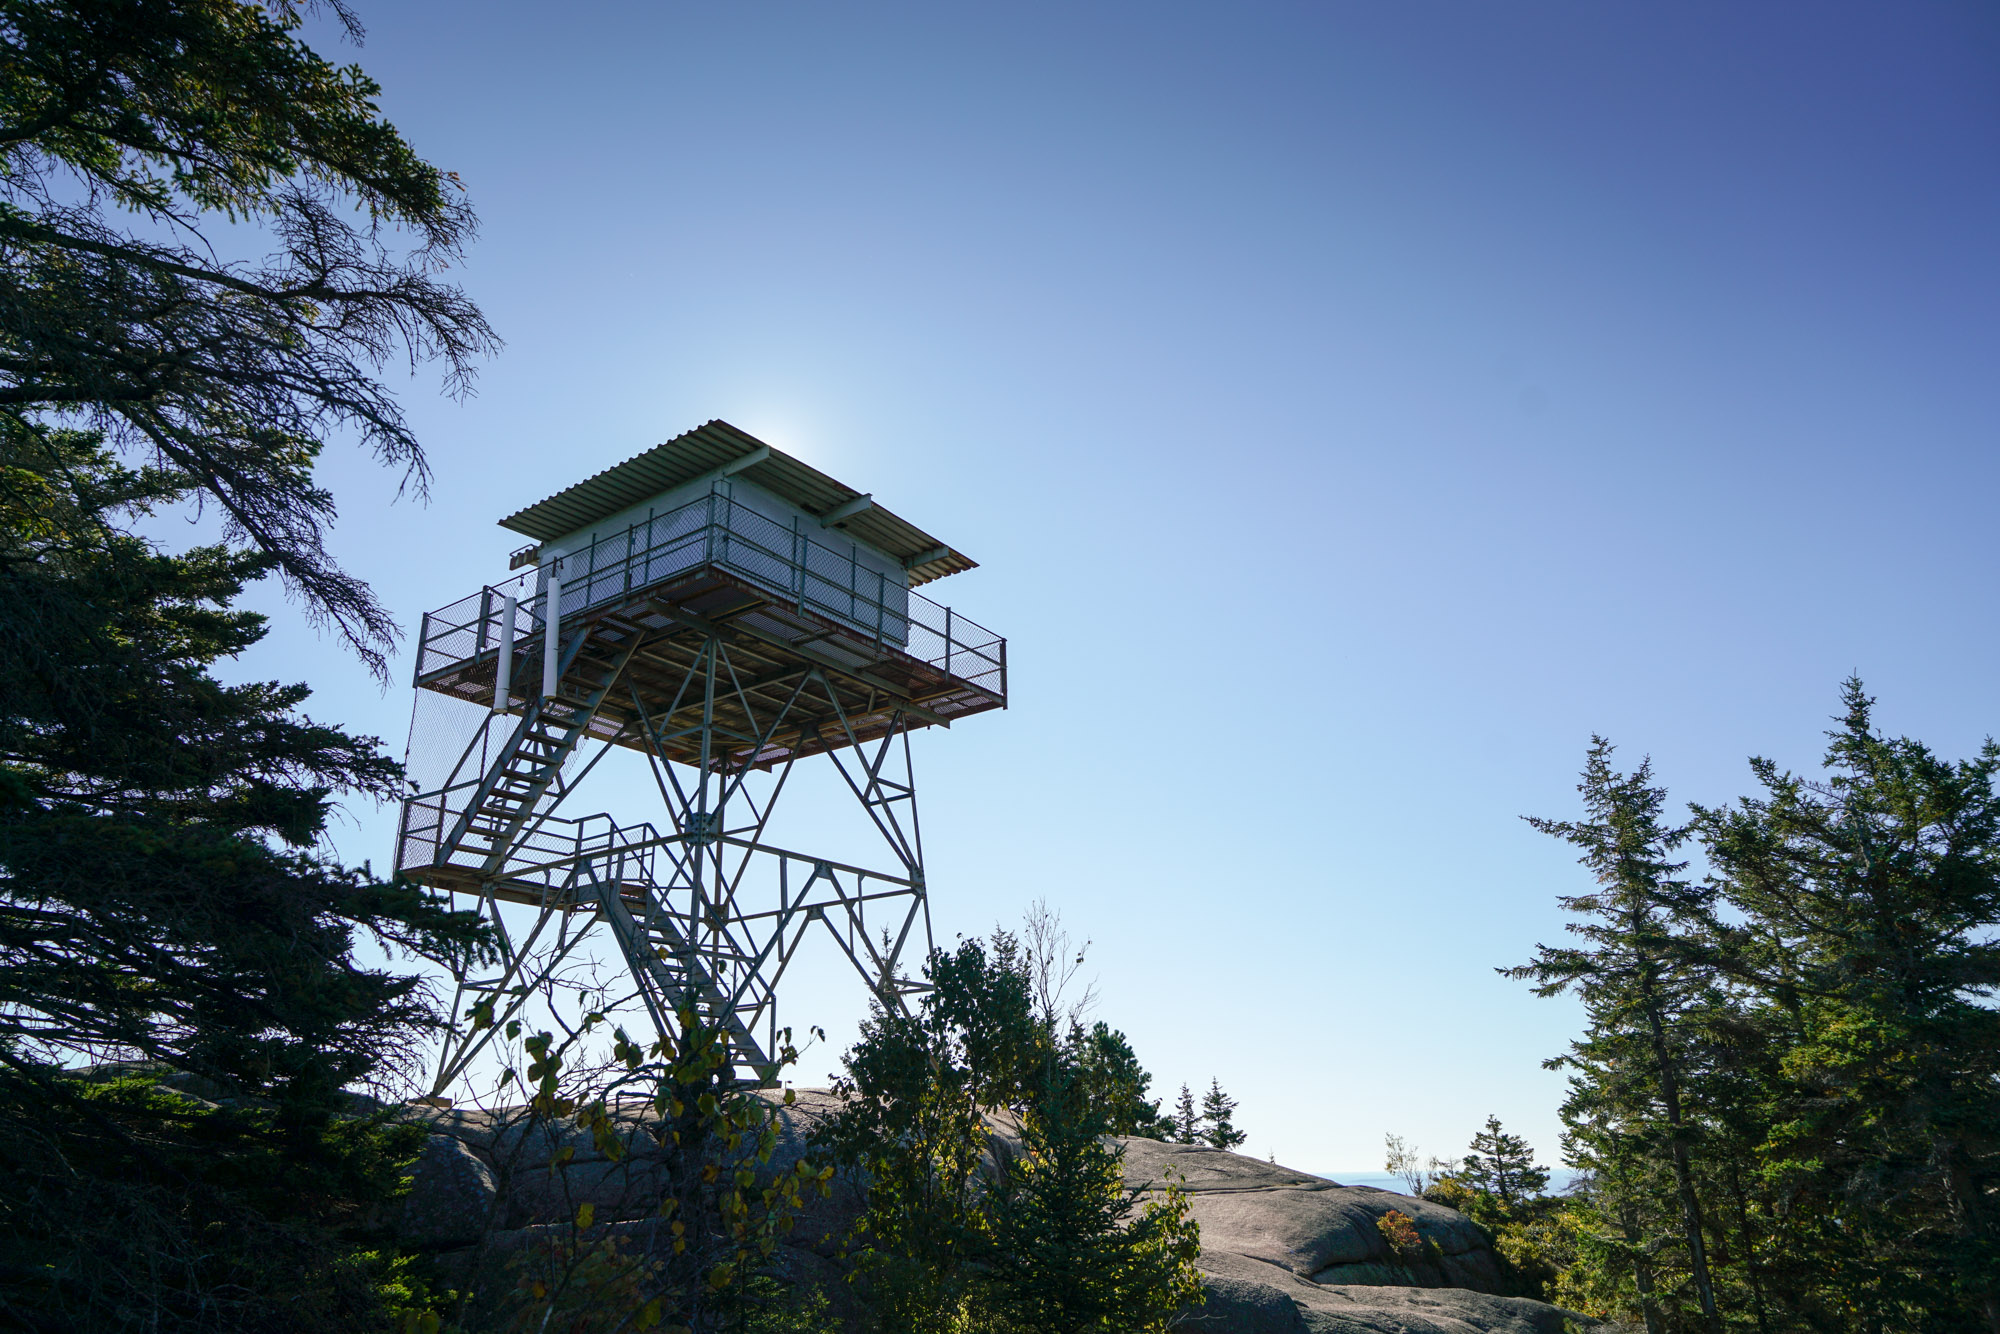 Hike To A Observation Tower With Stunning Panoramic Views At Acadia National Park In Maine